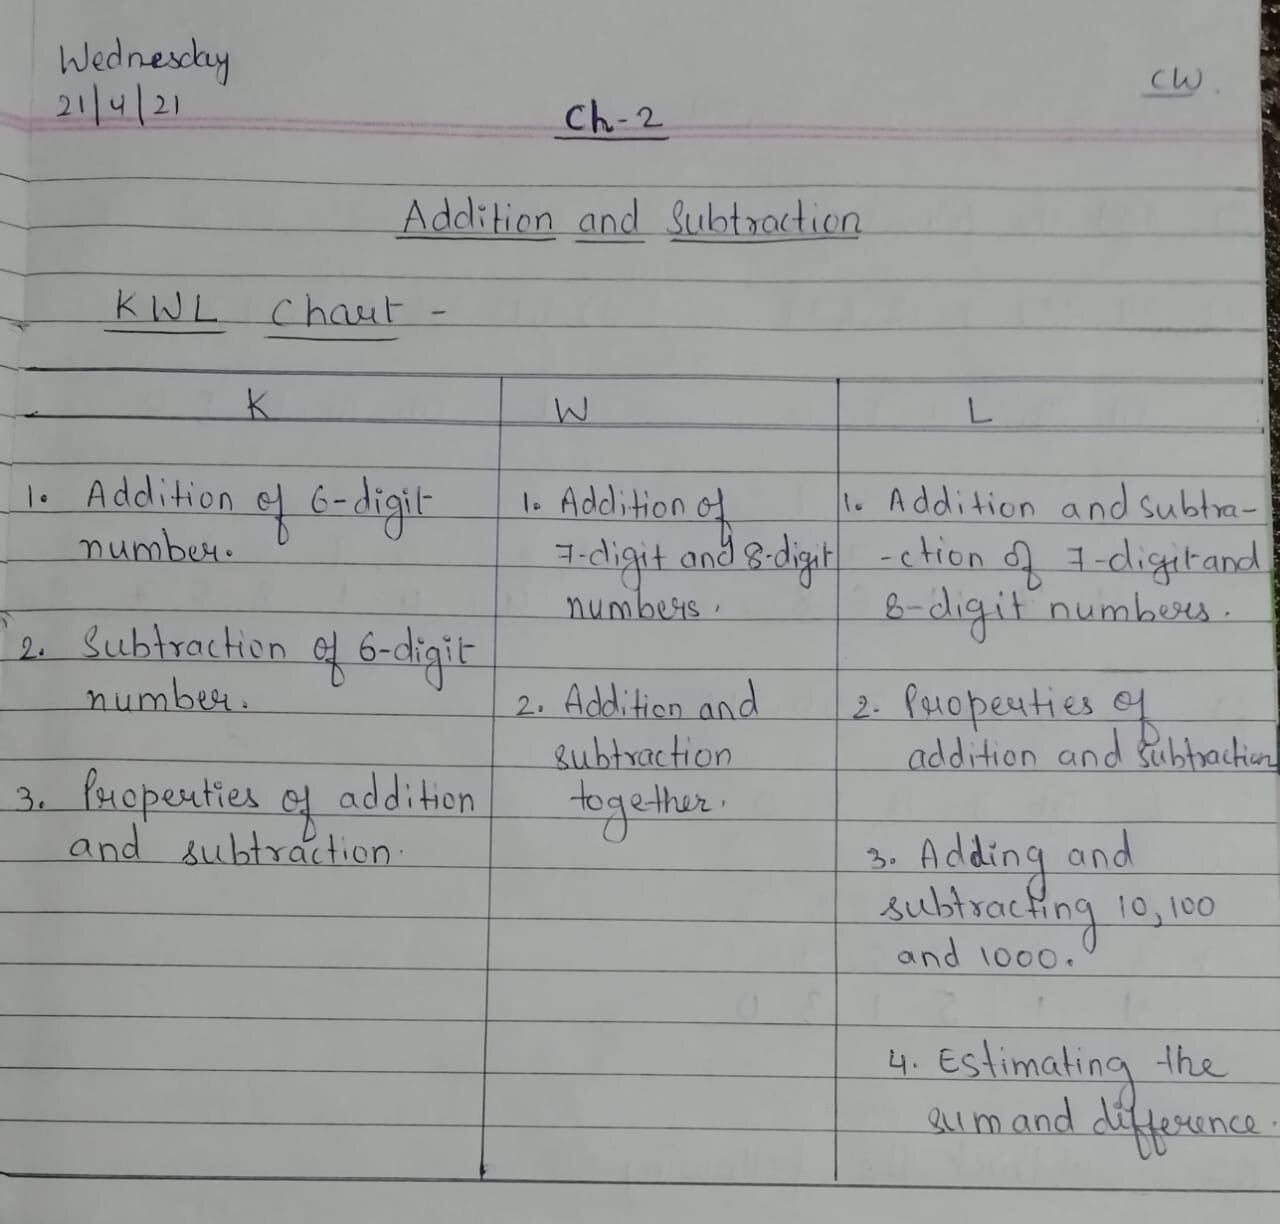 small resolution of Grade 5 Math Chapter-2 Addition and Subtraction Notebook Work